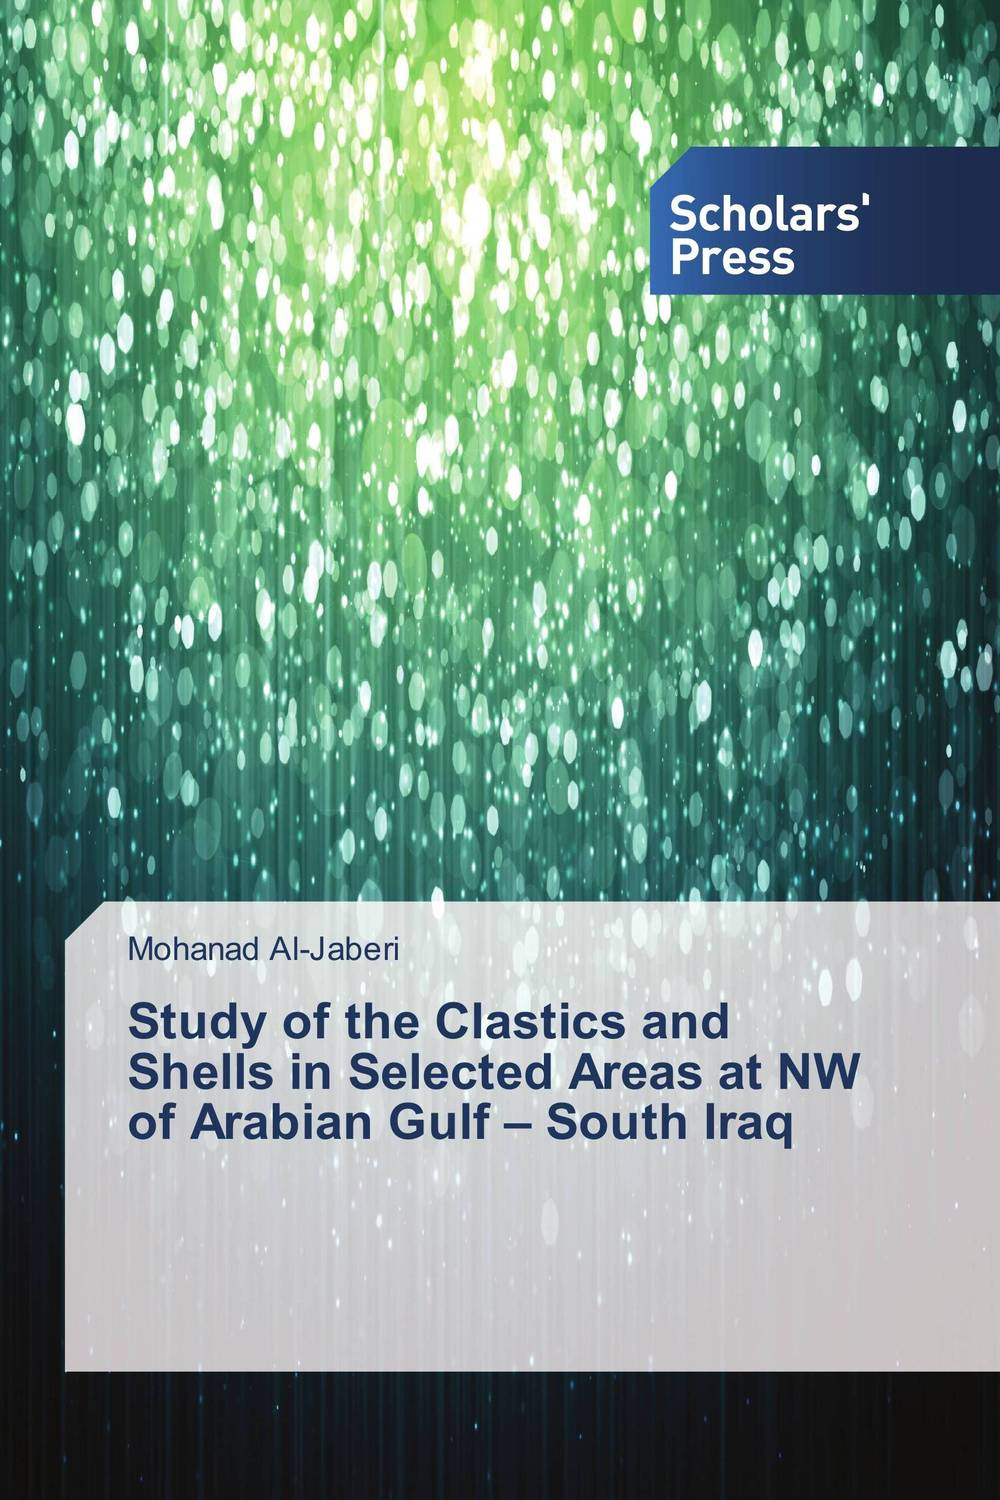 Study of the Clastics and Shells in Selected Areas at NW of Arabian Gulf – South Iraq north and south